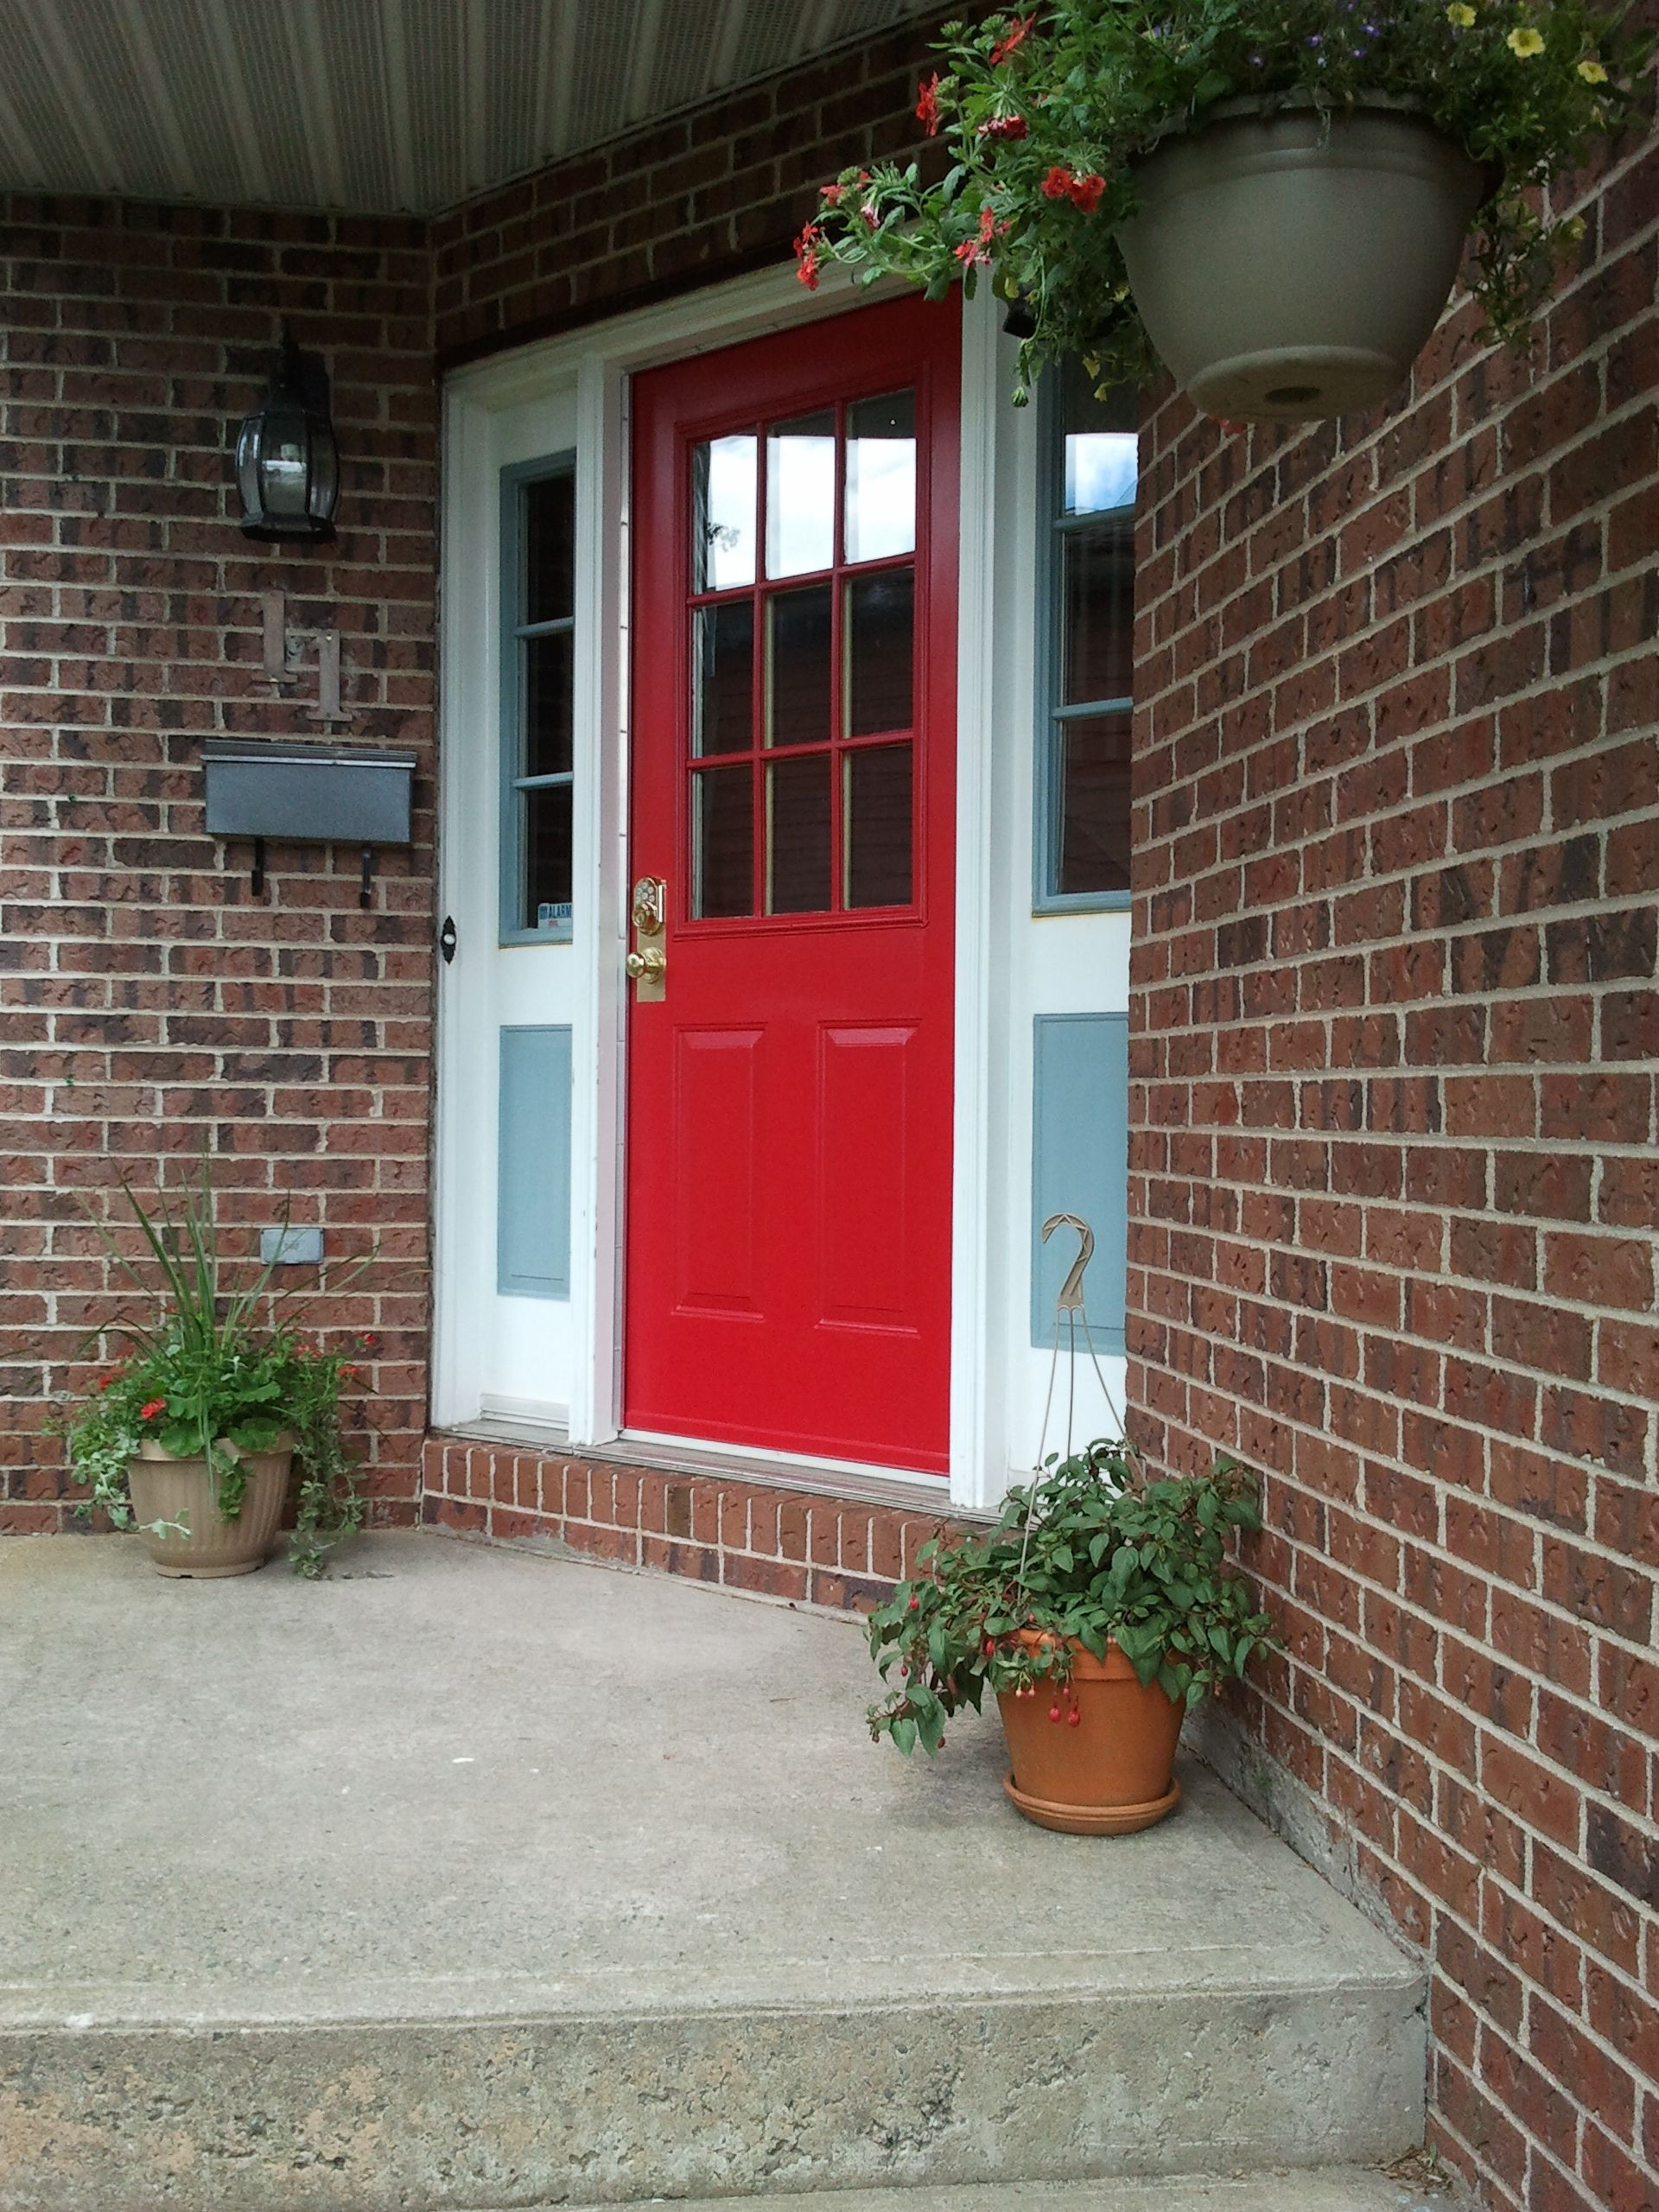 Behr Geranium Red Here S Another View Of A Diffe Door I Previously Posted As Well